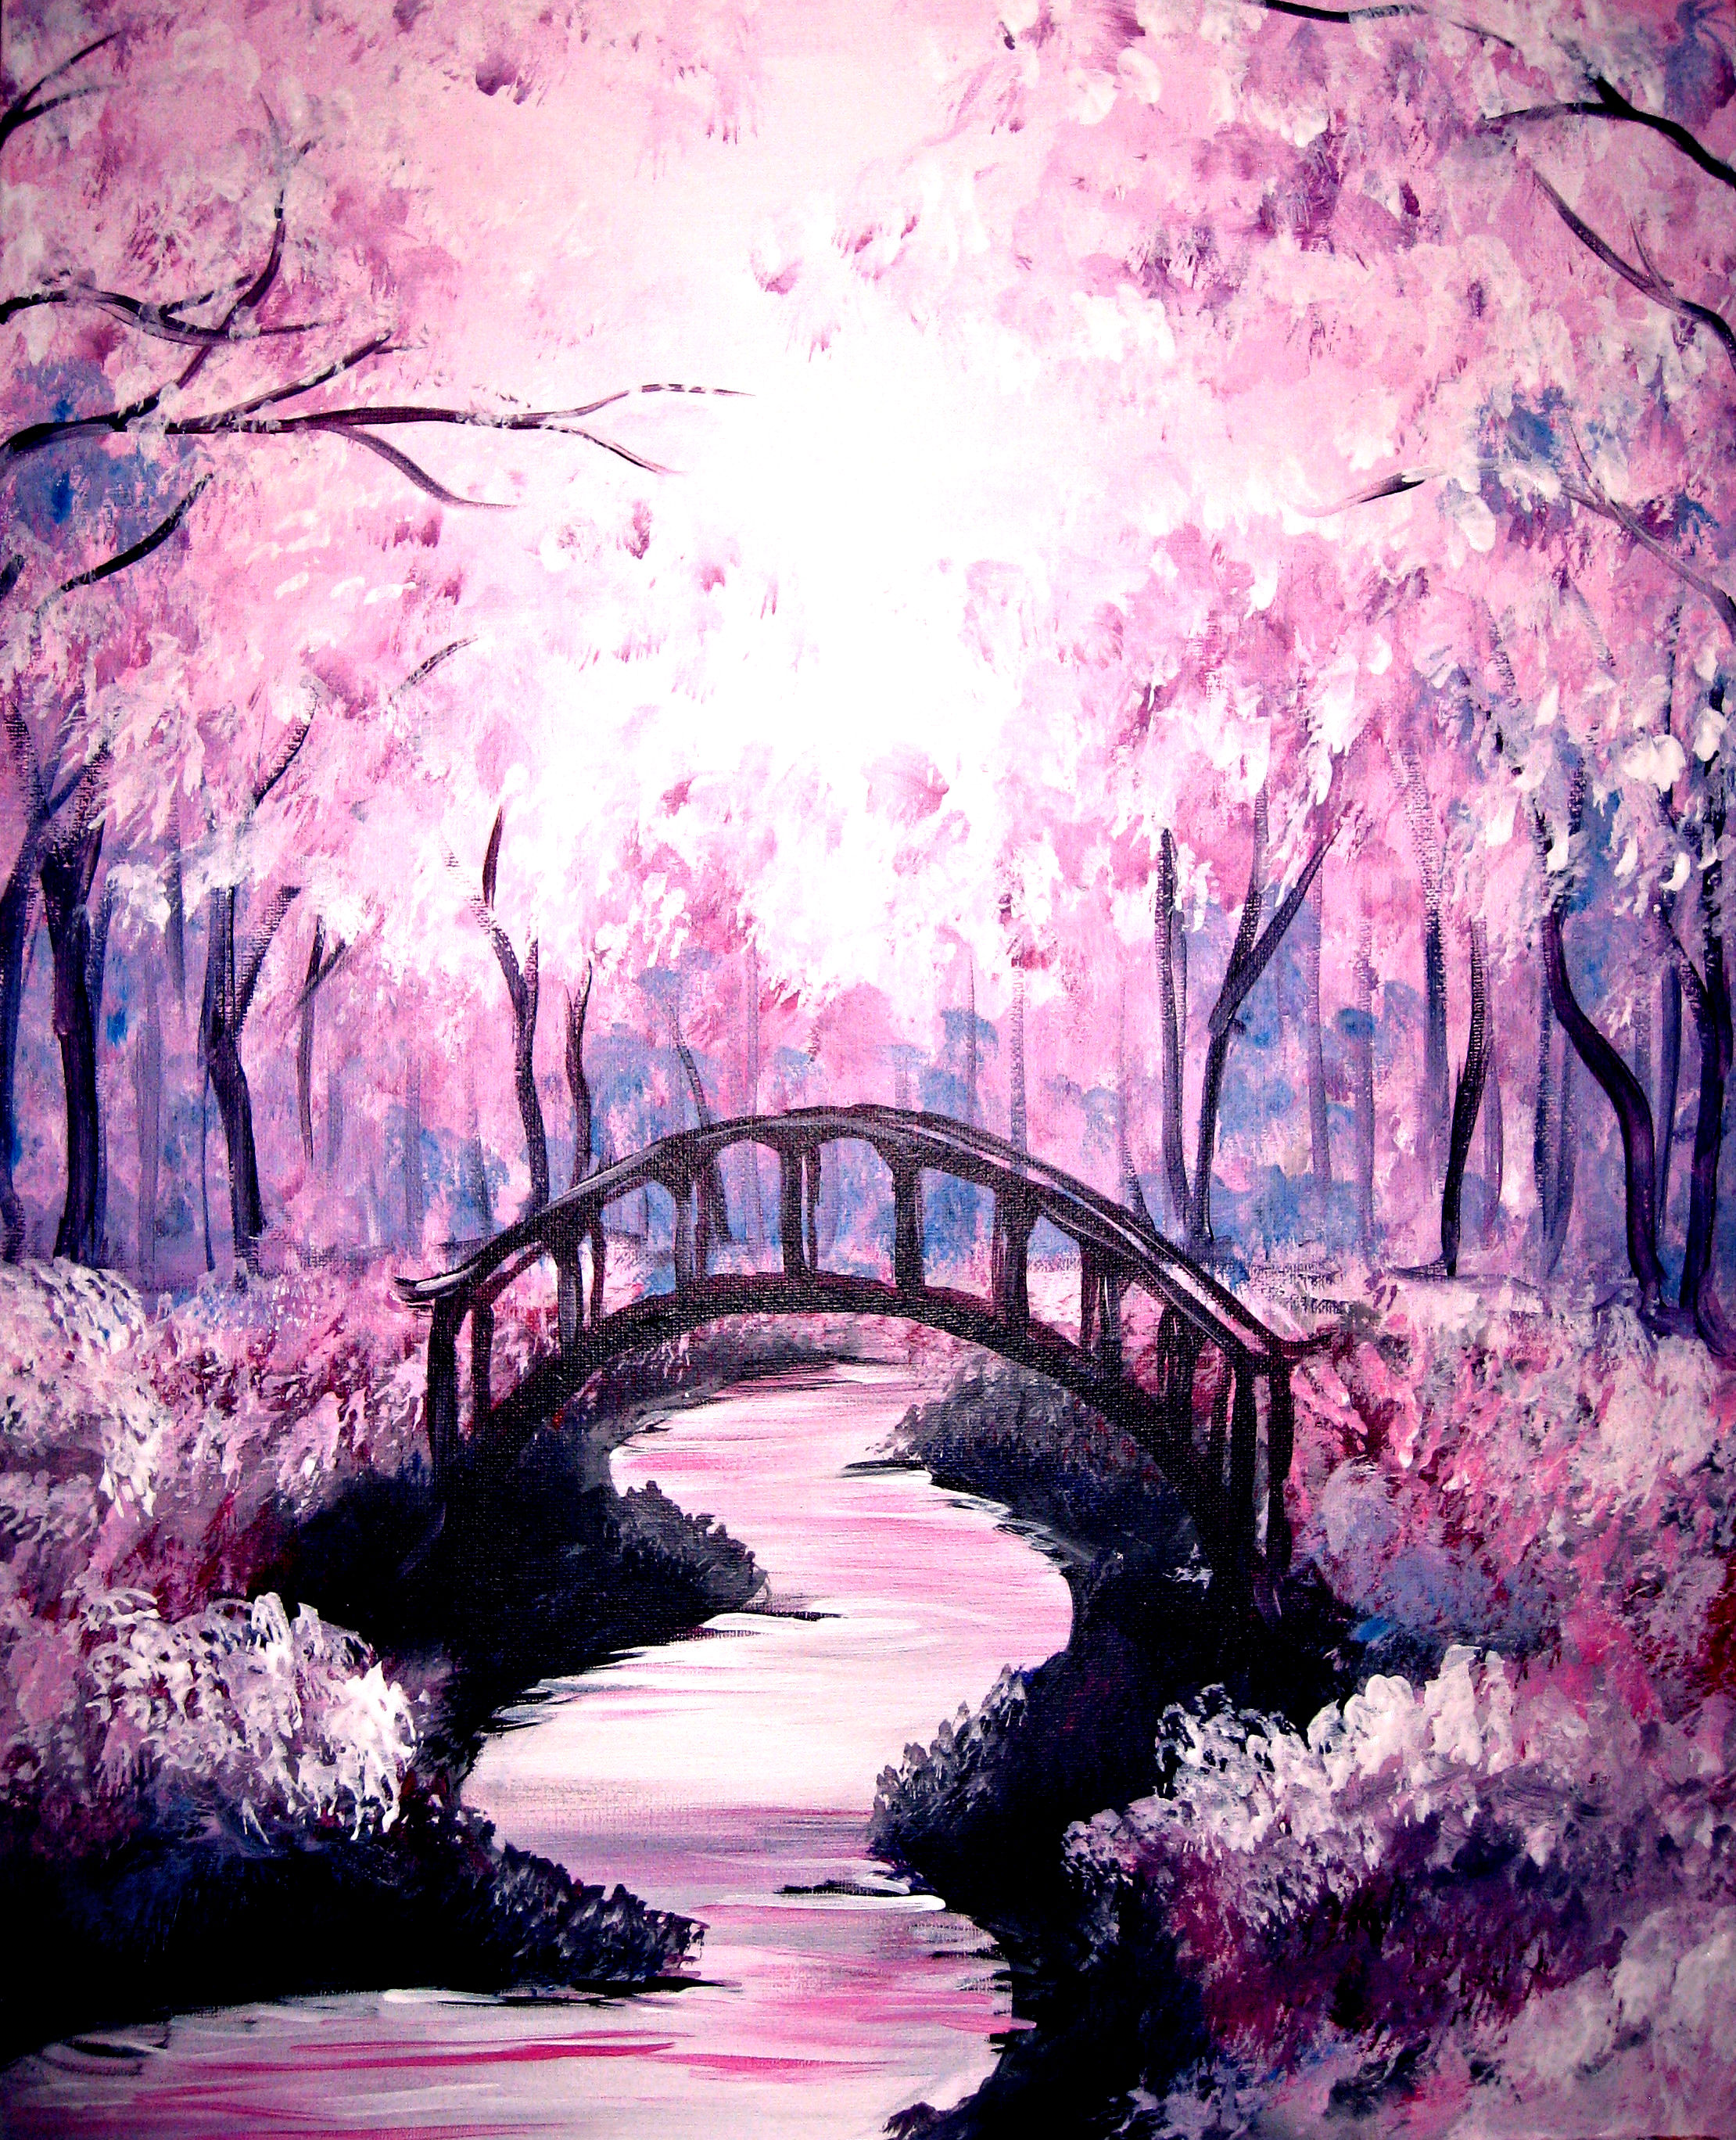 Napper tandy 39 s northport paint nite event Cherry blossom pictures